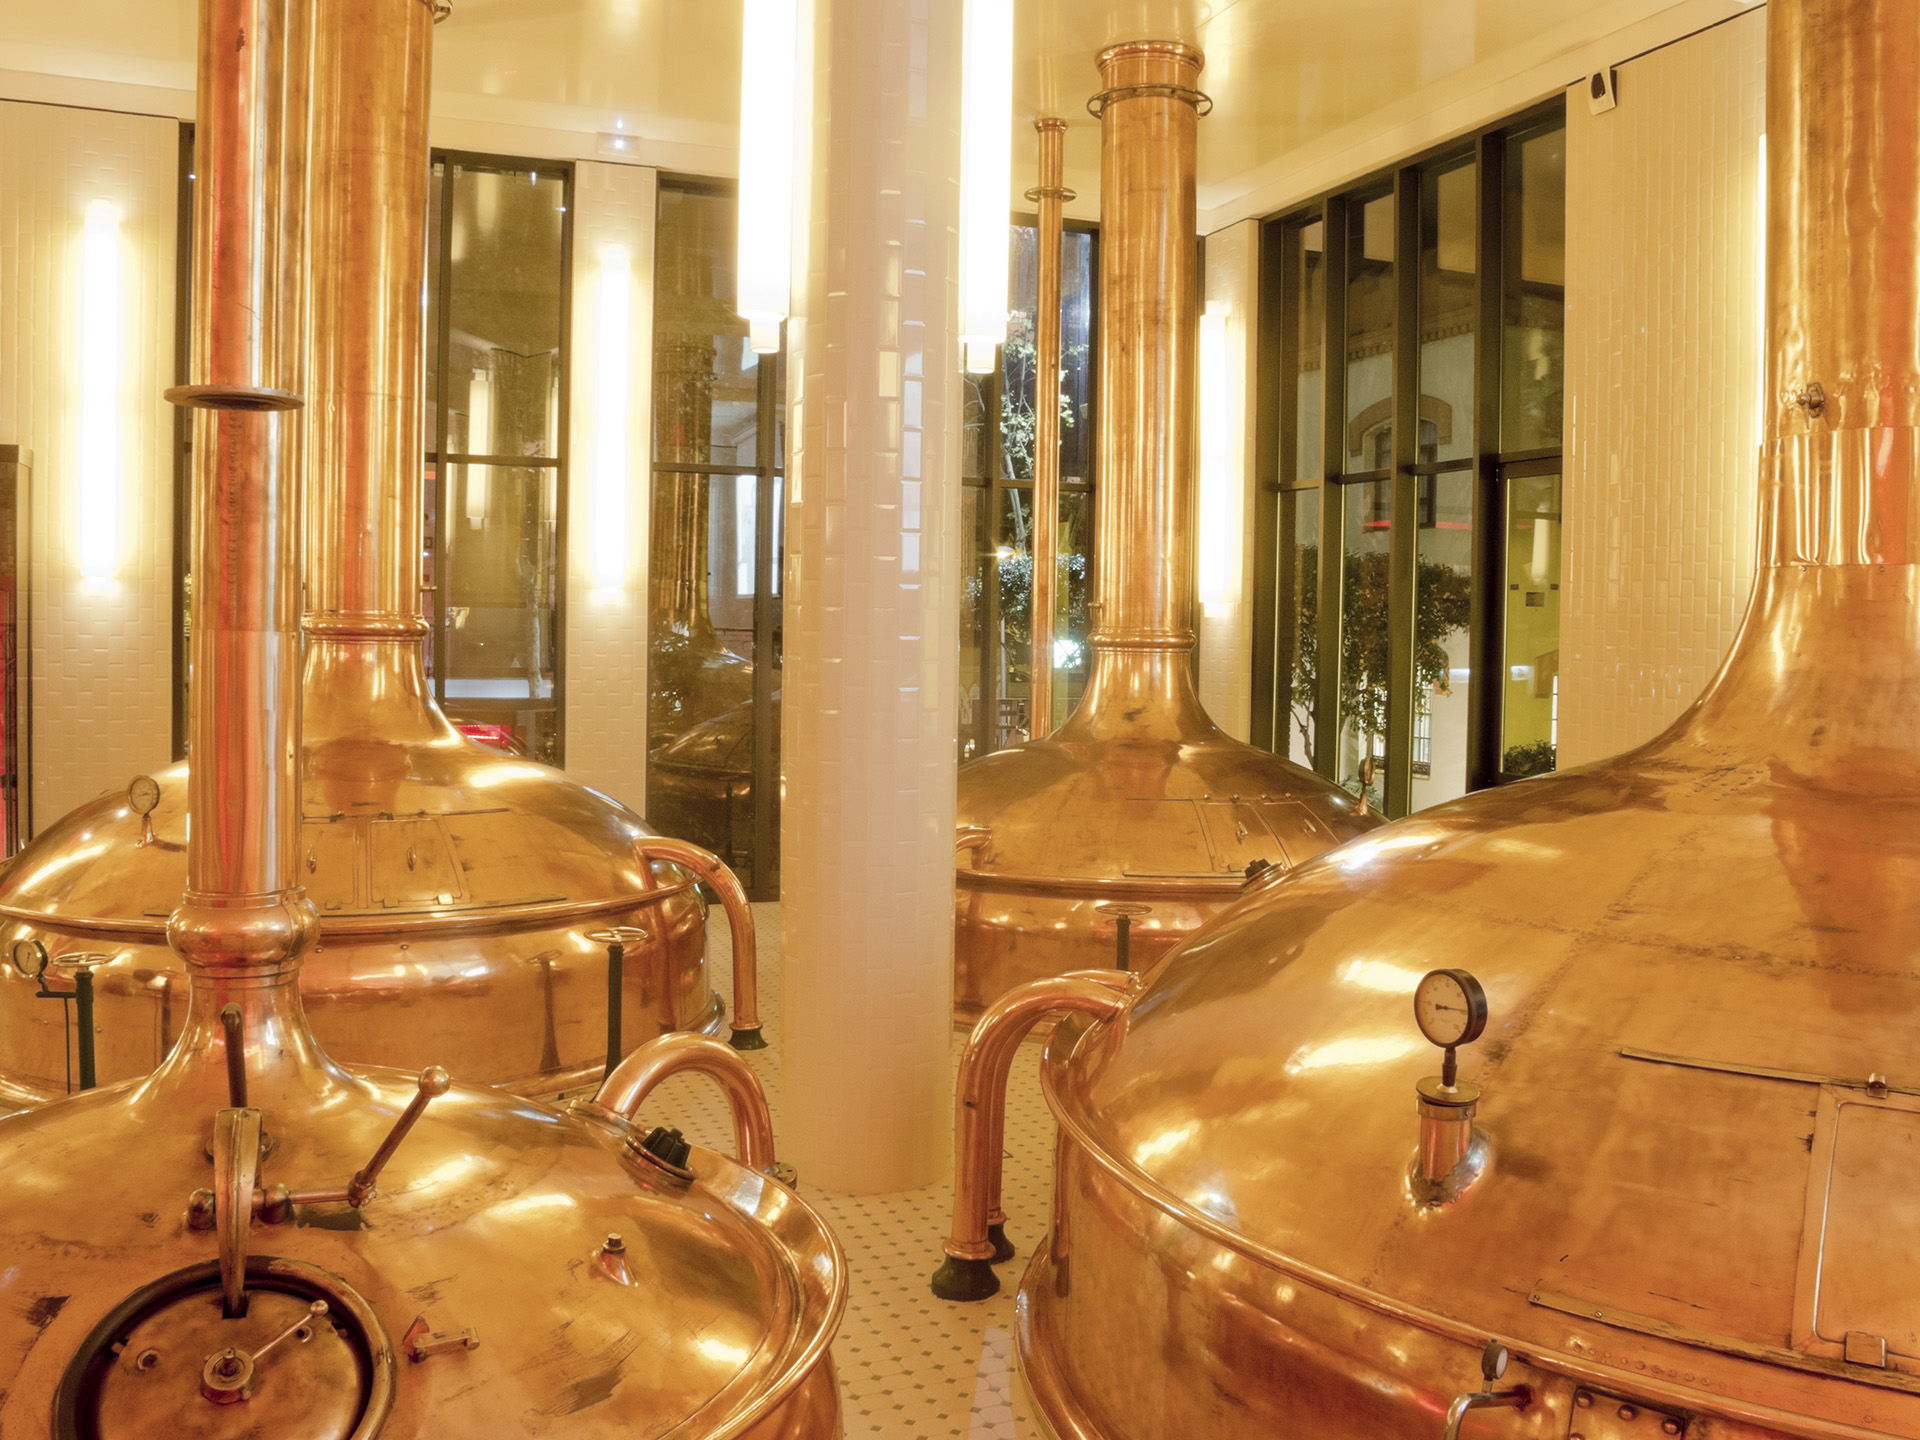 Brewery with copper distillery tanks